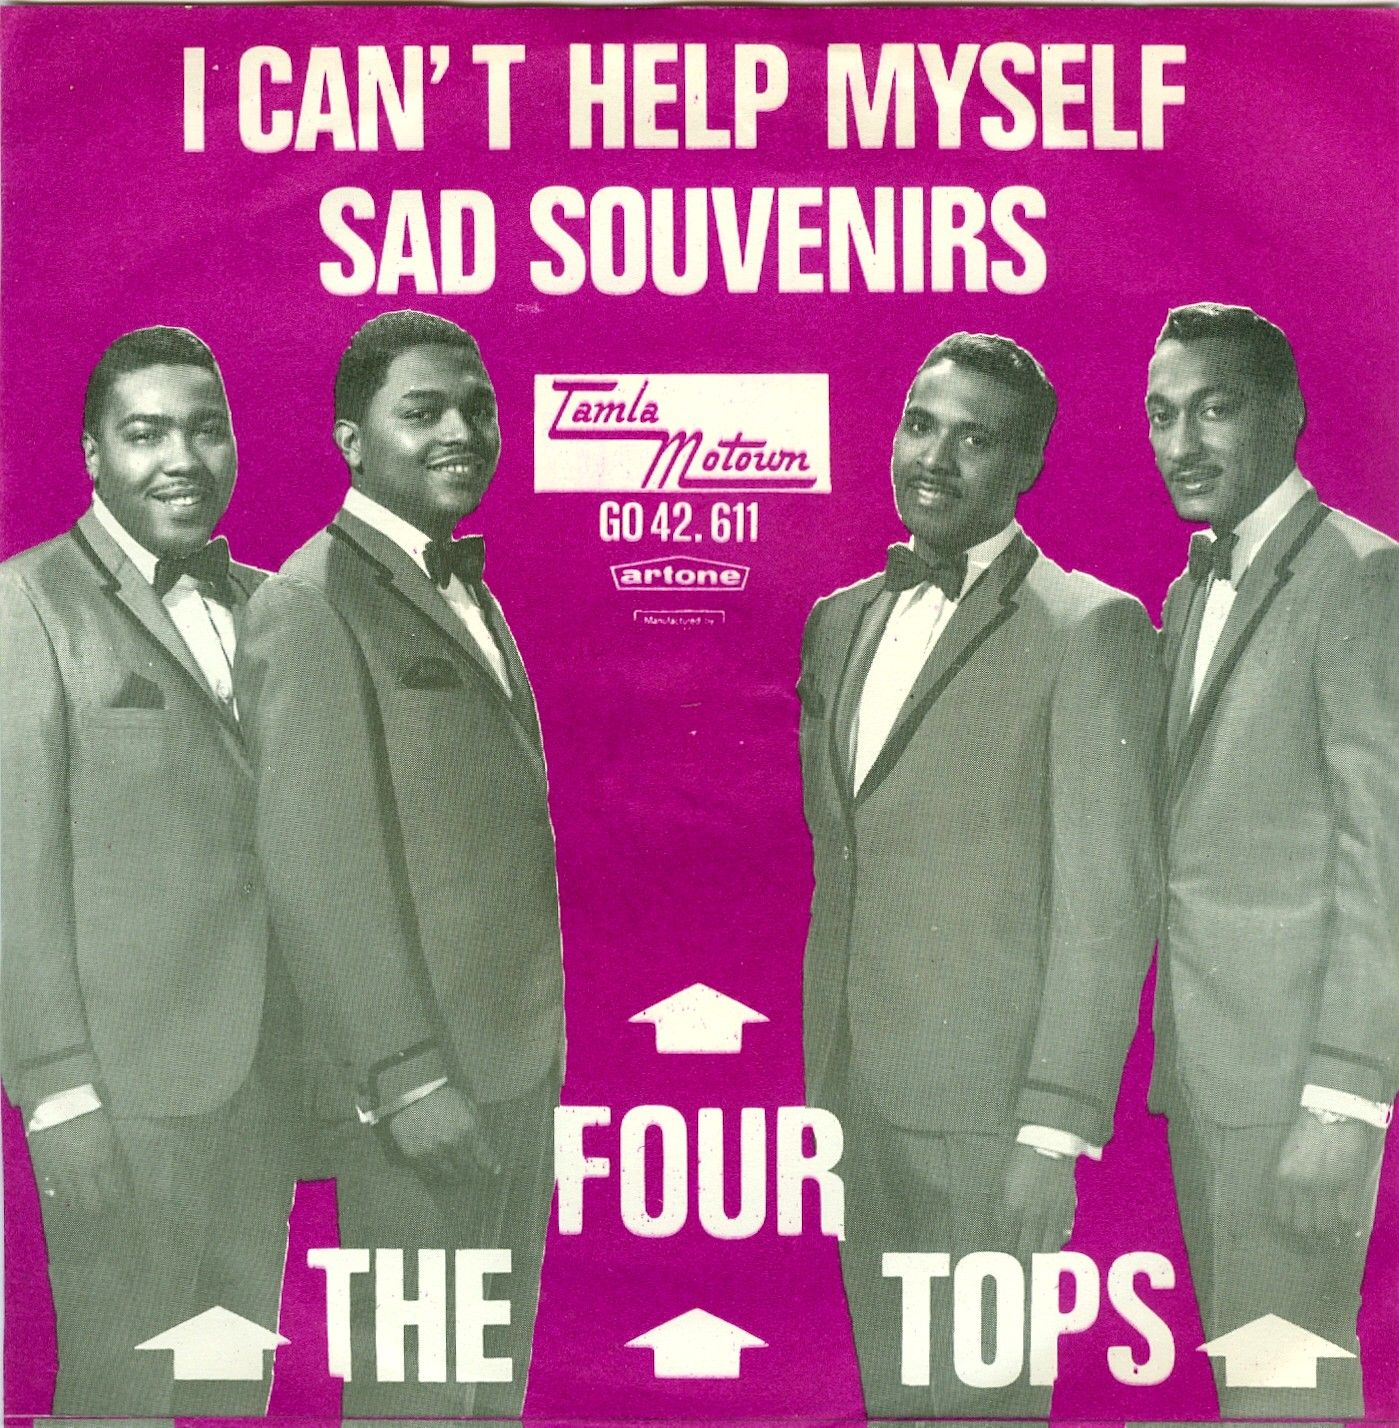 June 19, 1965 - The Four Tops went to No.1 on the US singles chart with 'I Can't Help Myself'. Written and produced by Holland–Dozier–Holland, the song is one of the most well-known Motown tunes of the 1960s. Lead singer Levi Stubbs was not satisfied with the recording session and was promised that he could do it again the following day, but no other session ever took place. The track that became a hit was the second take of the song. •• #fourtops #thisdayinmusic #motown